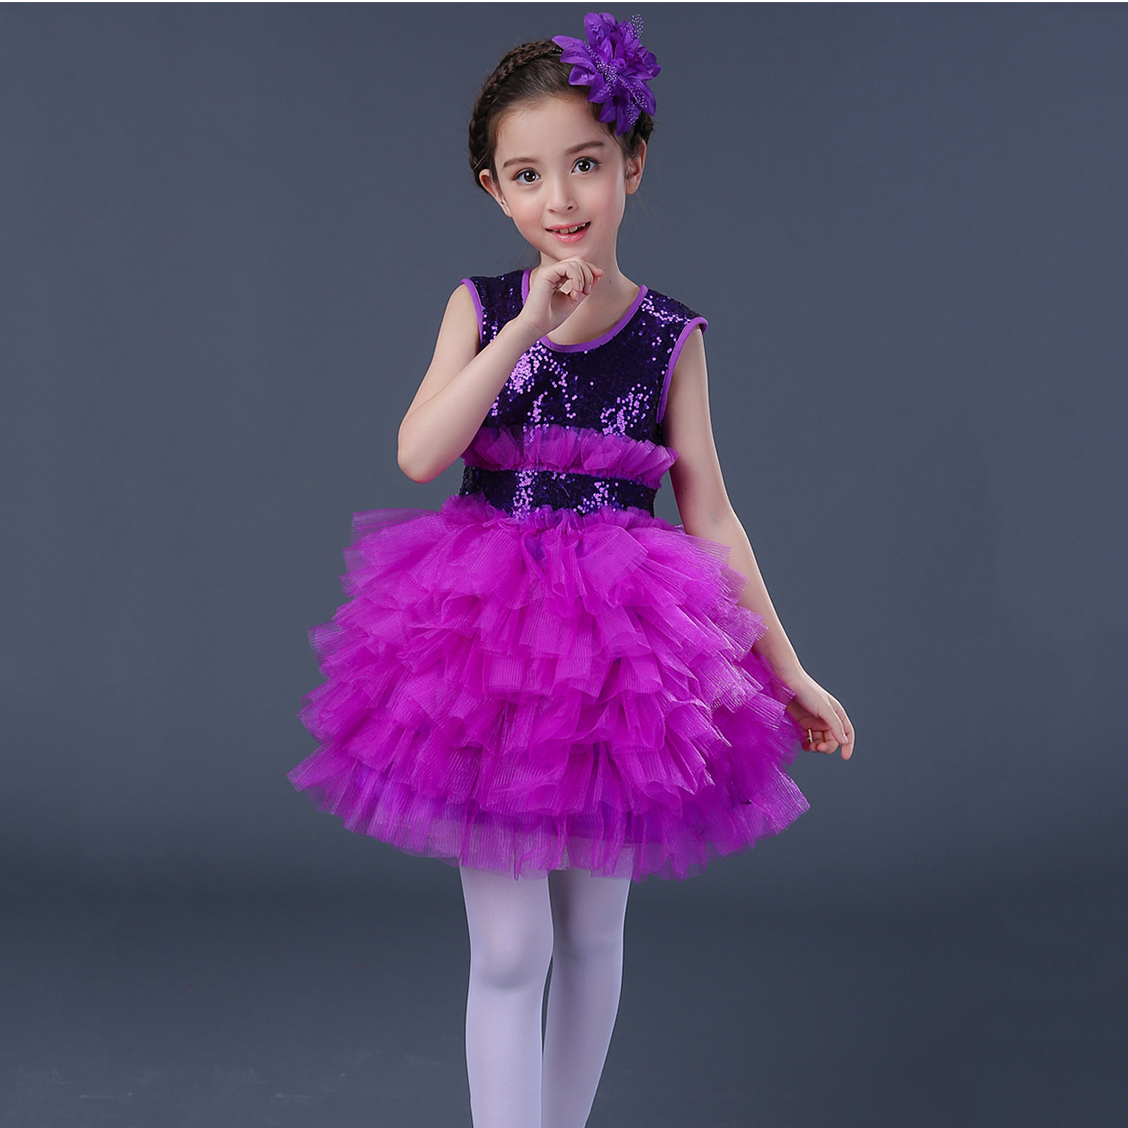 Yellow Blue Kids Party Wear Clothes for Girls Fluffy Ball Gown Organza Wedding Dress Sequin Purple Cocktail Dresses for Girls